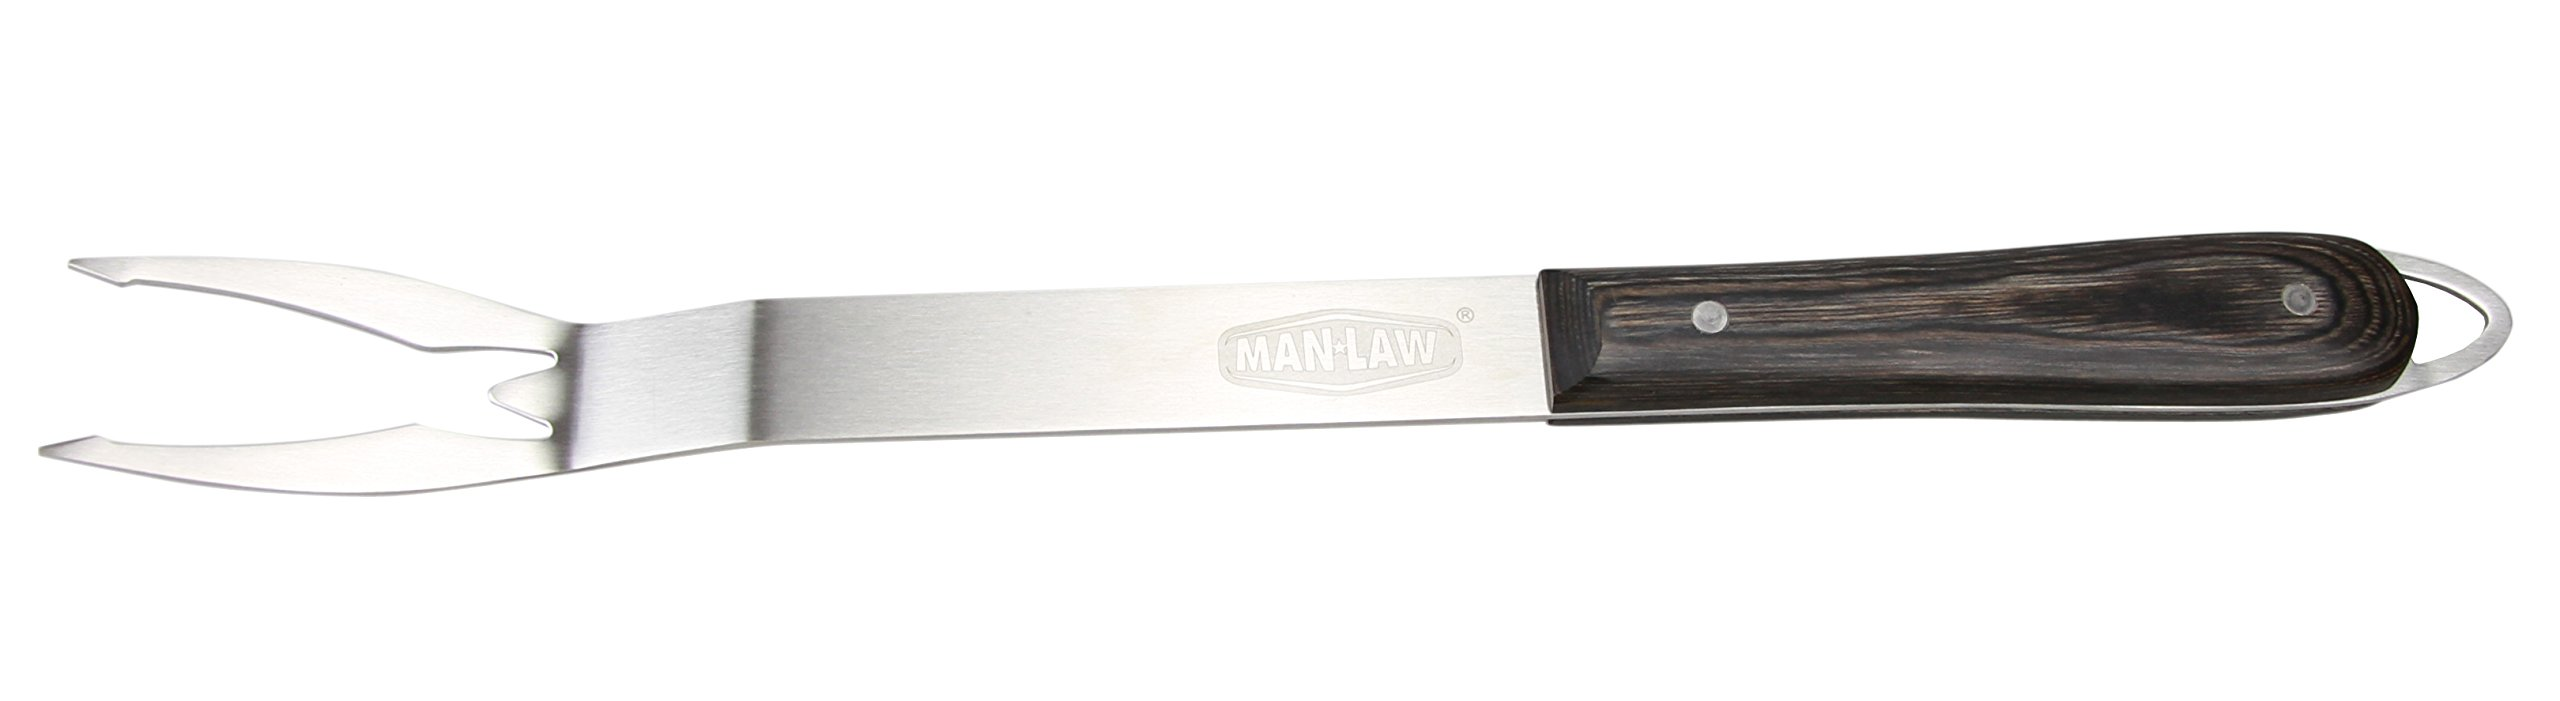 Man Law BBQ Products MAN-H1A-F H1A Series Open Stock Fork, One Size, Stainless Steel and Wood by Man Law BBQ Products